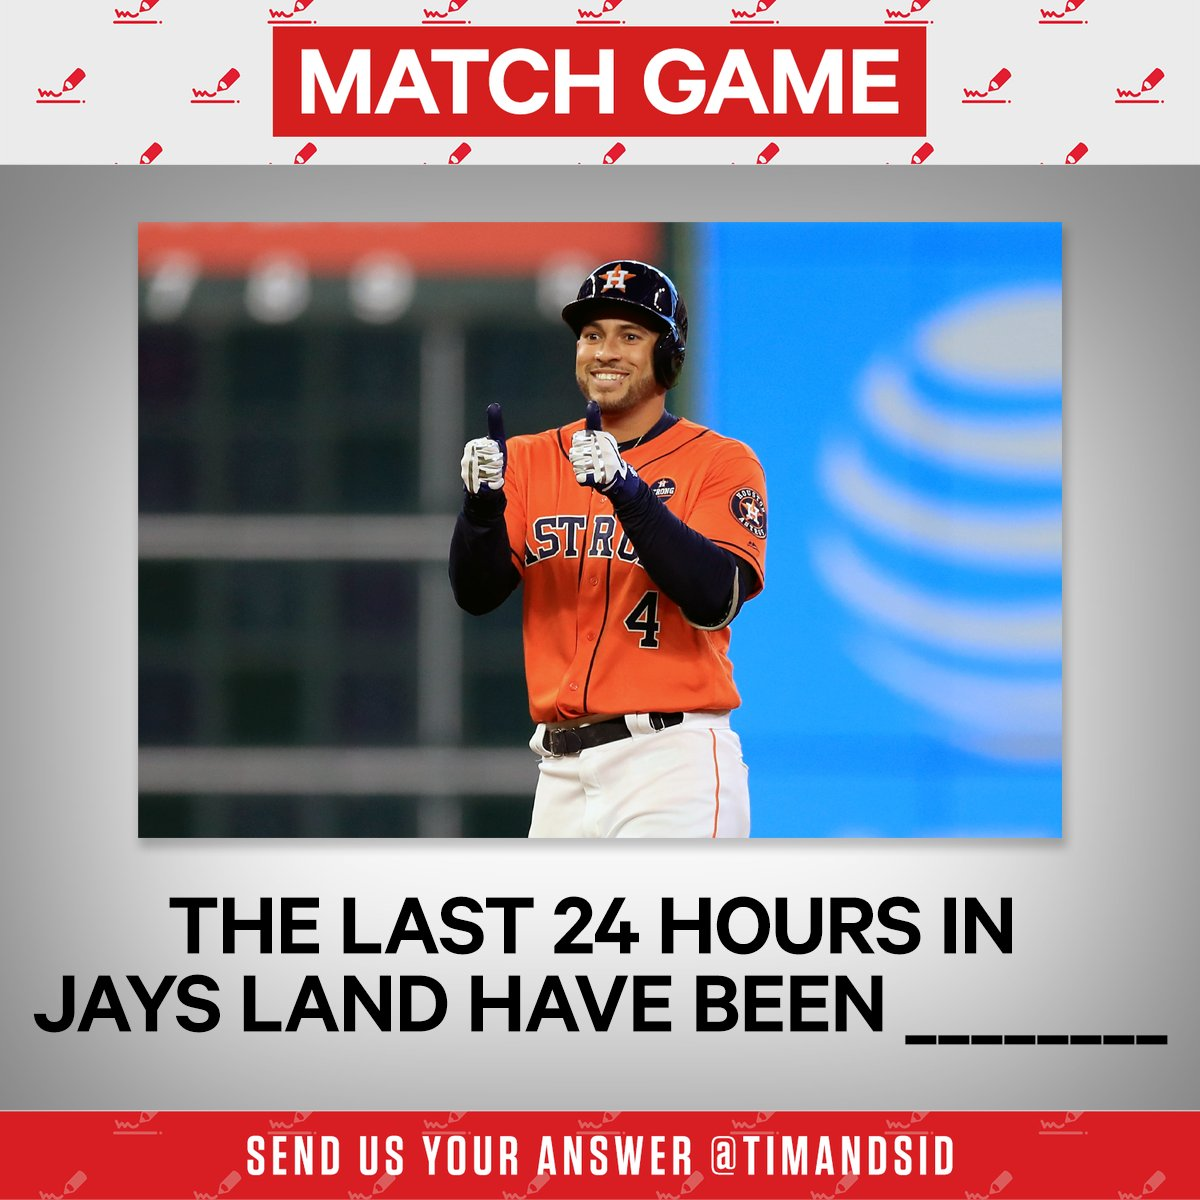 """🚨MATCH GAME TIME🚨  """"The last 24 hours in Jays land have been _______""""    Send us your best responses using the hashtags #MatchGame and #TimandSid to follow along. ✍️"""